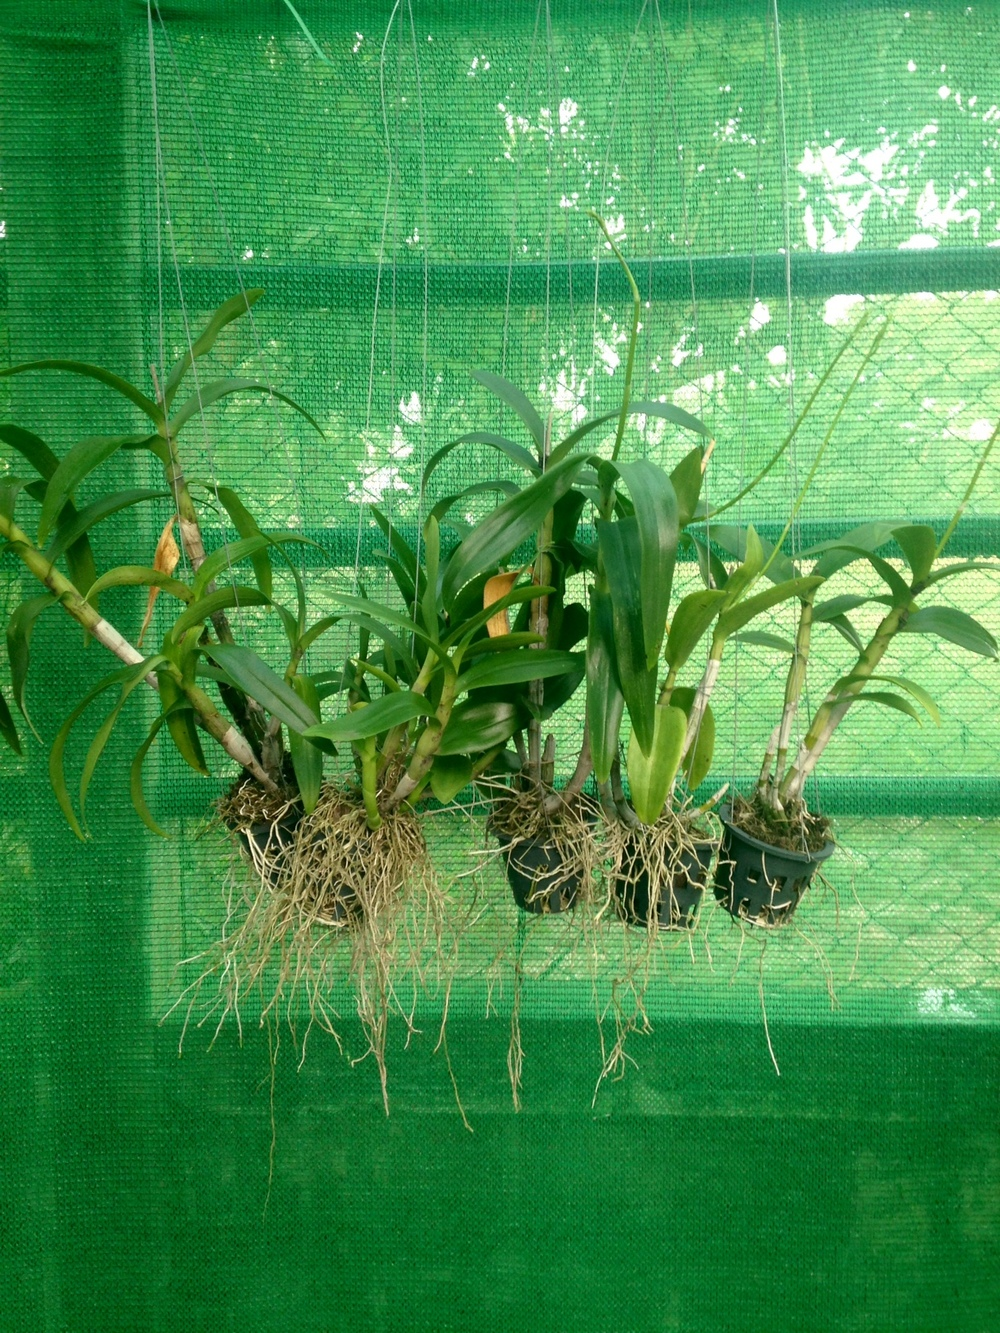 I love plants, orchids in the greenhouse, Ban Samrit